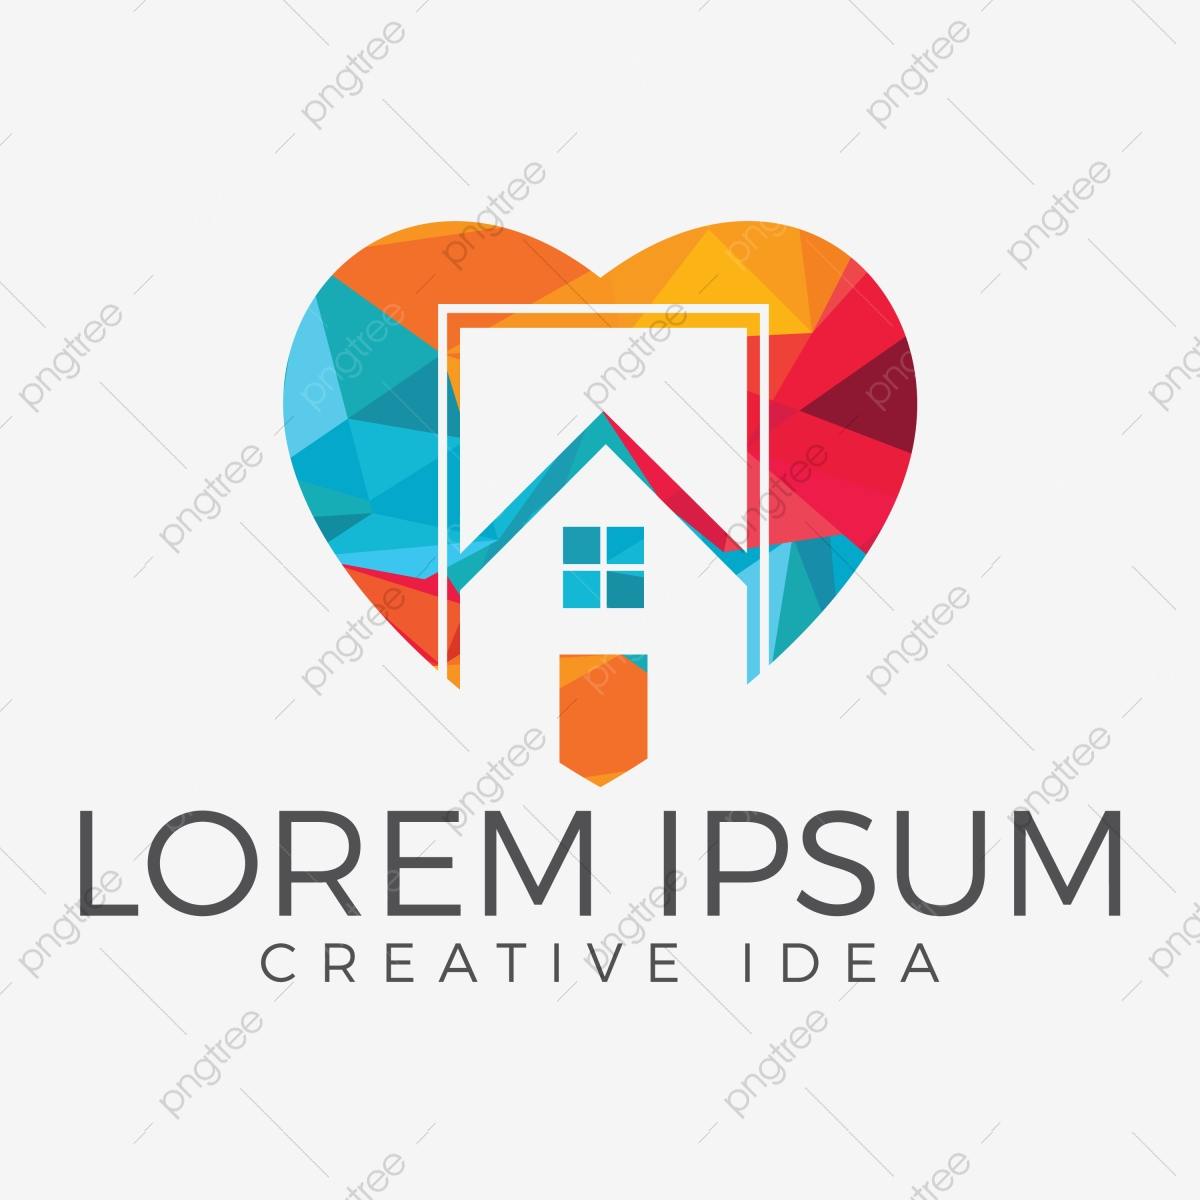 House And Heart Logo Vector Design Home Care Logo Heart Icons Home Icons House Icons Png And Vector With Transparent Background For Free Download